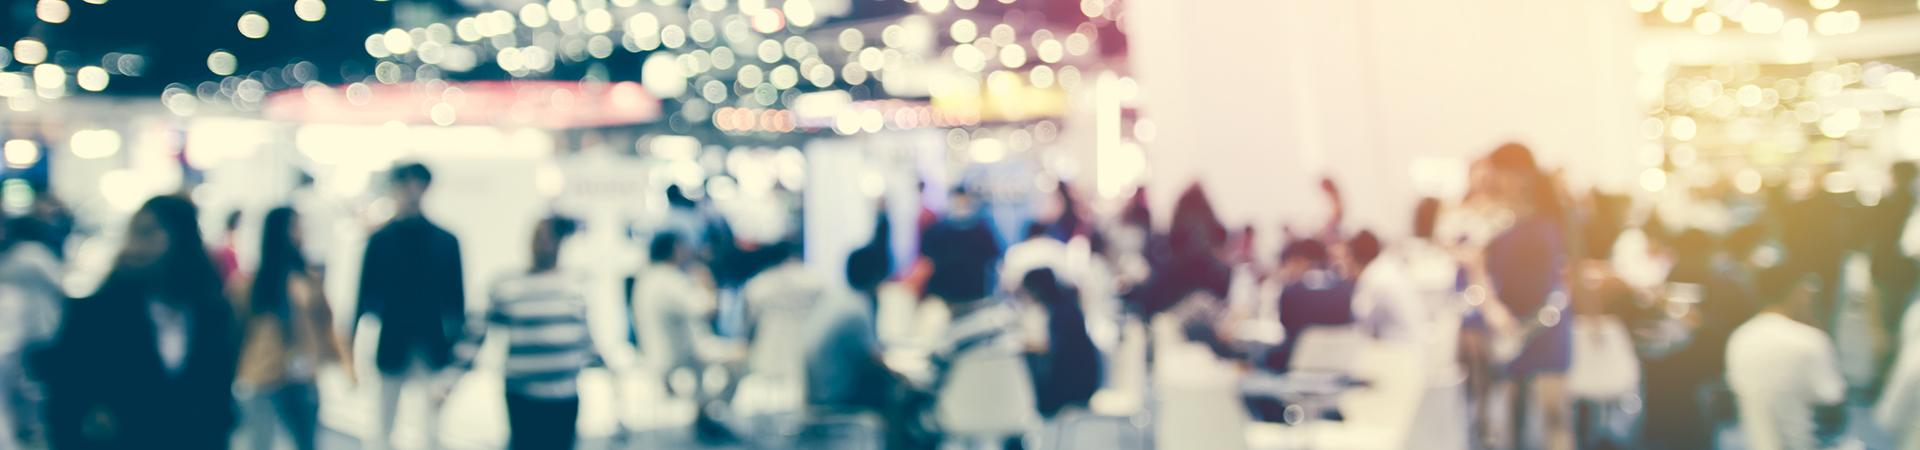 Event Header Messe 1 1920 450px